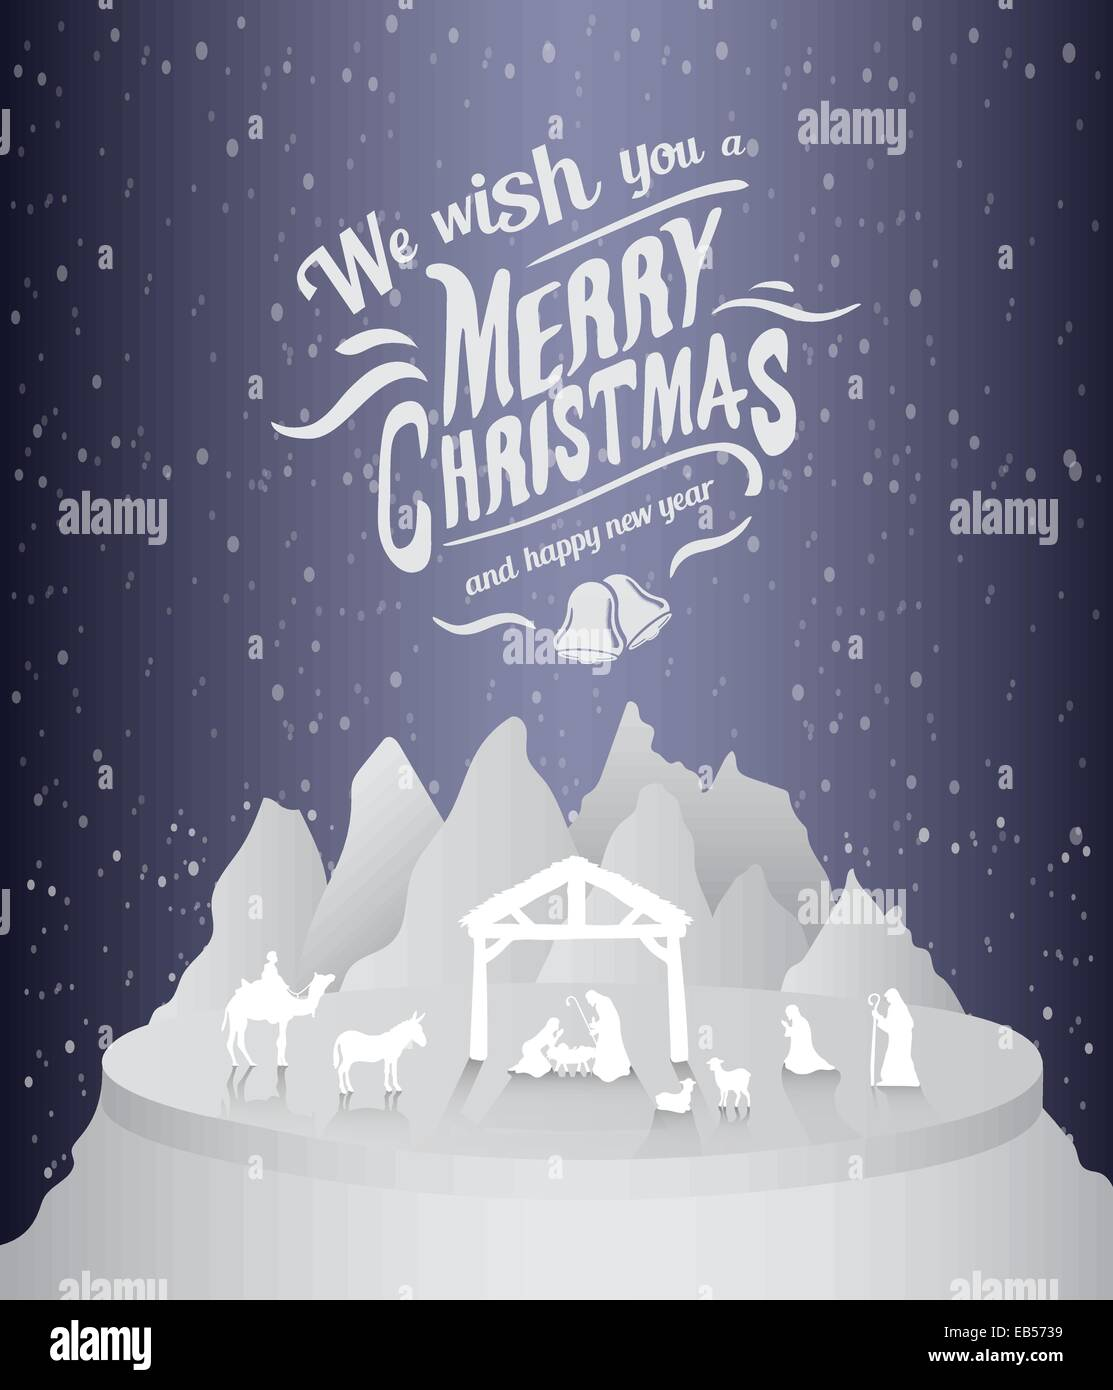 Merry christmas vector with nativity scene Stock Vector Art ...